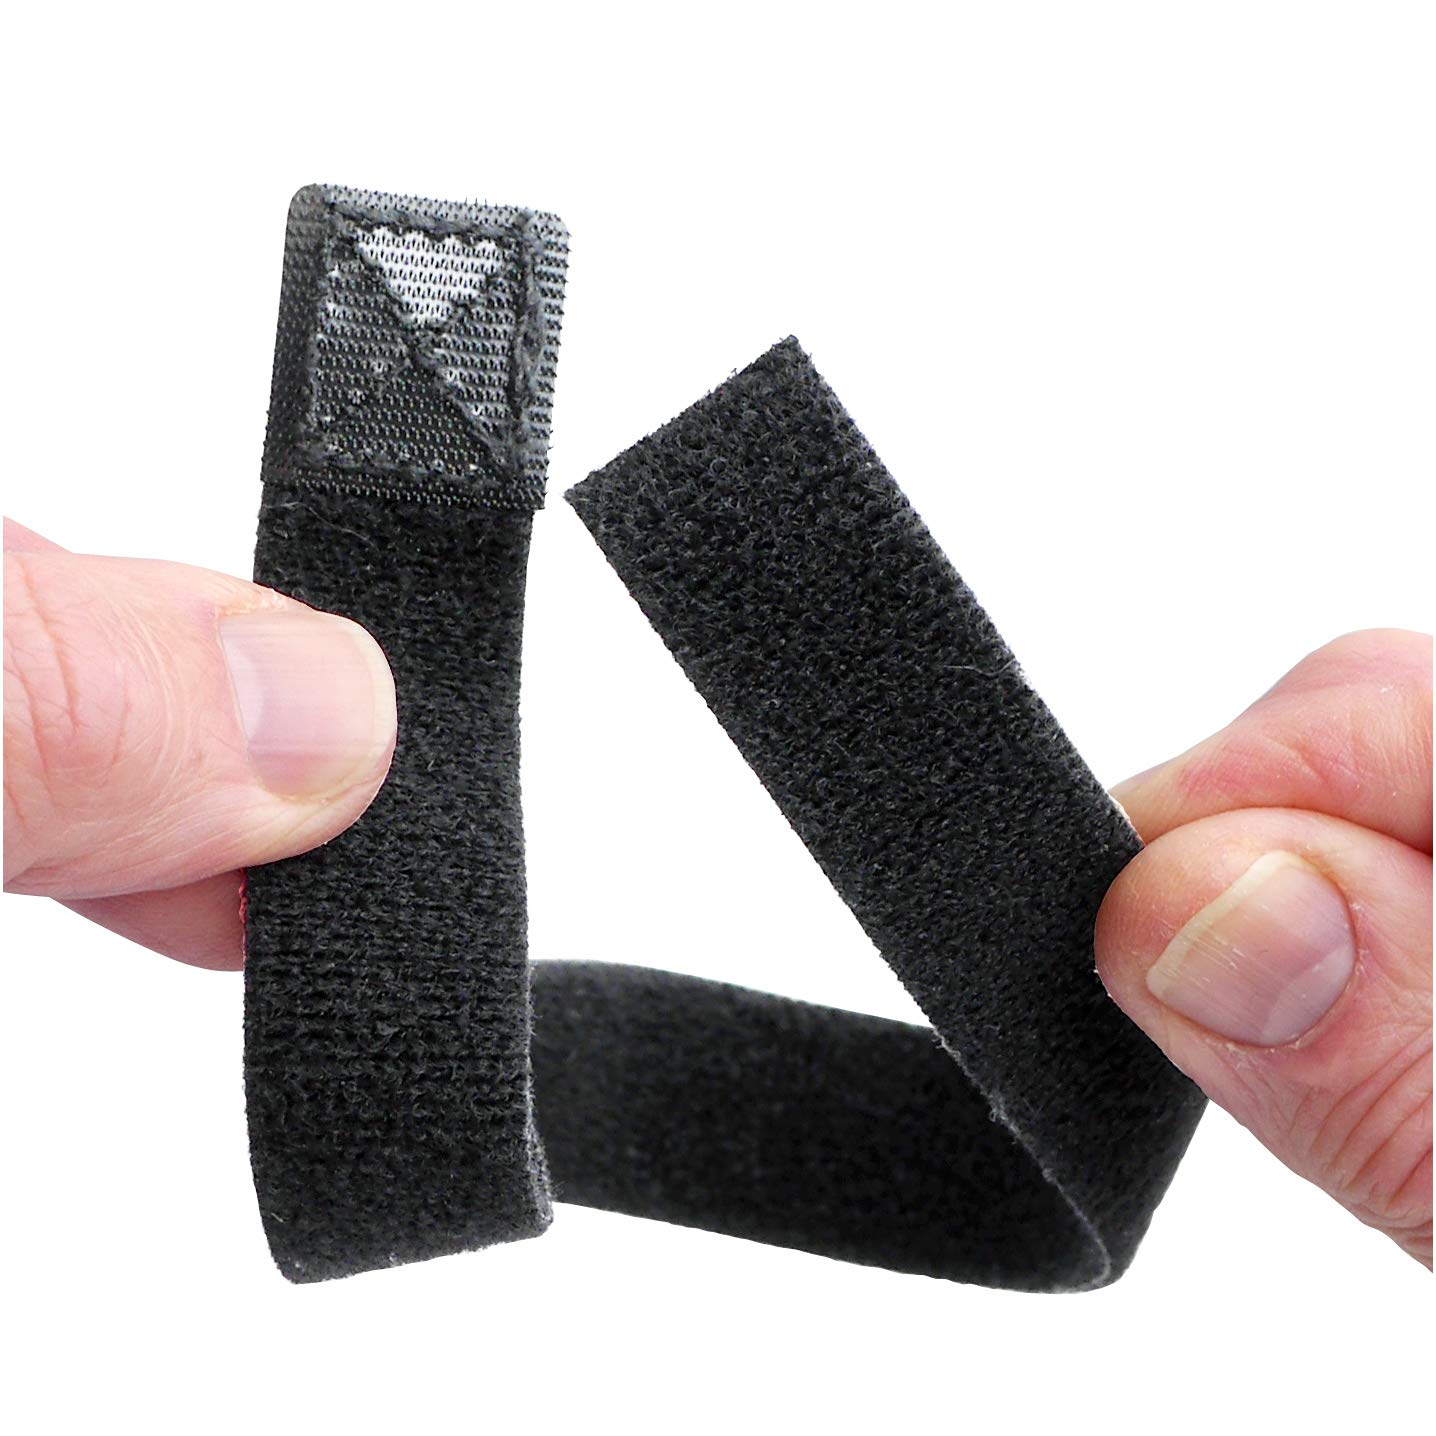 CMCcare Thumb Brace – Replacement Straps Black Pack of 3